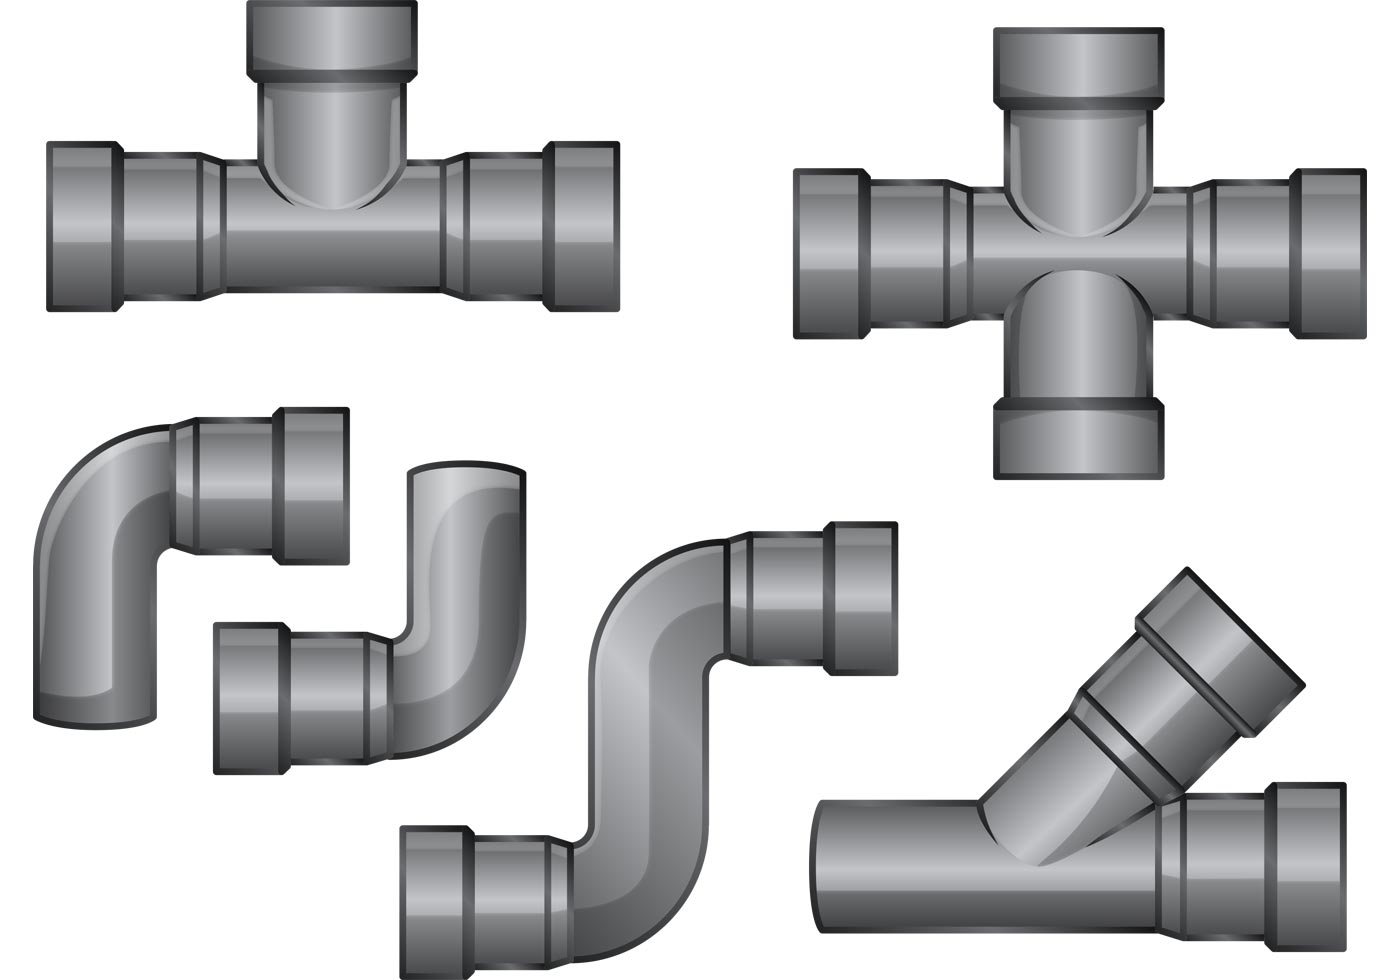 Sewer Pipe Vectors - Download Free Vectors, Clipart ...